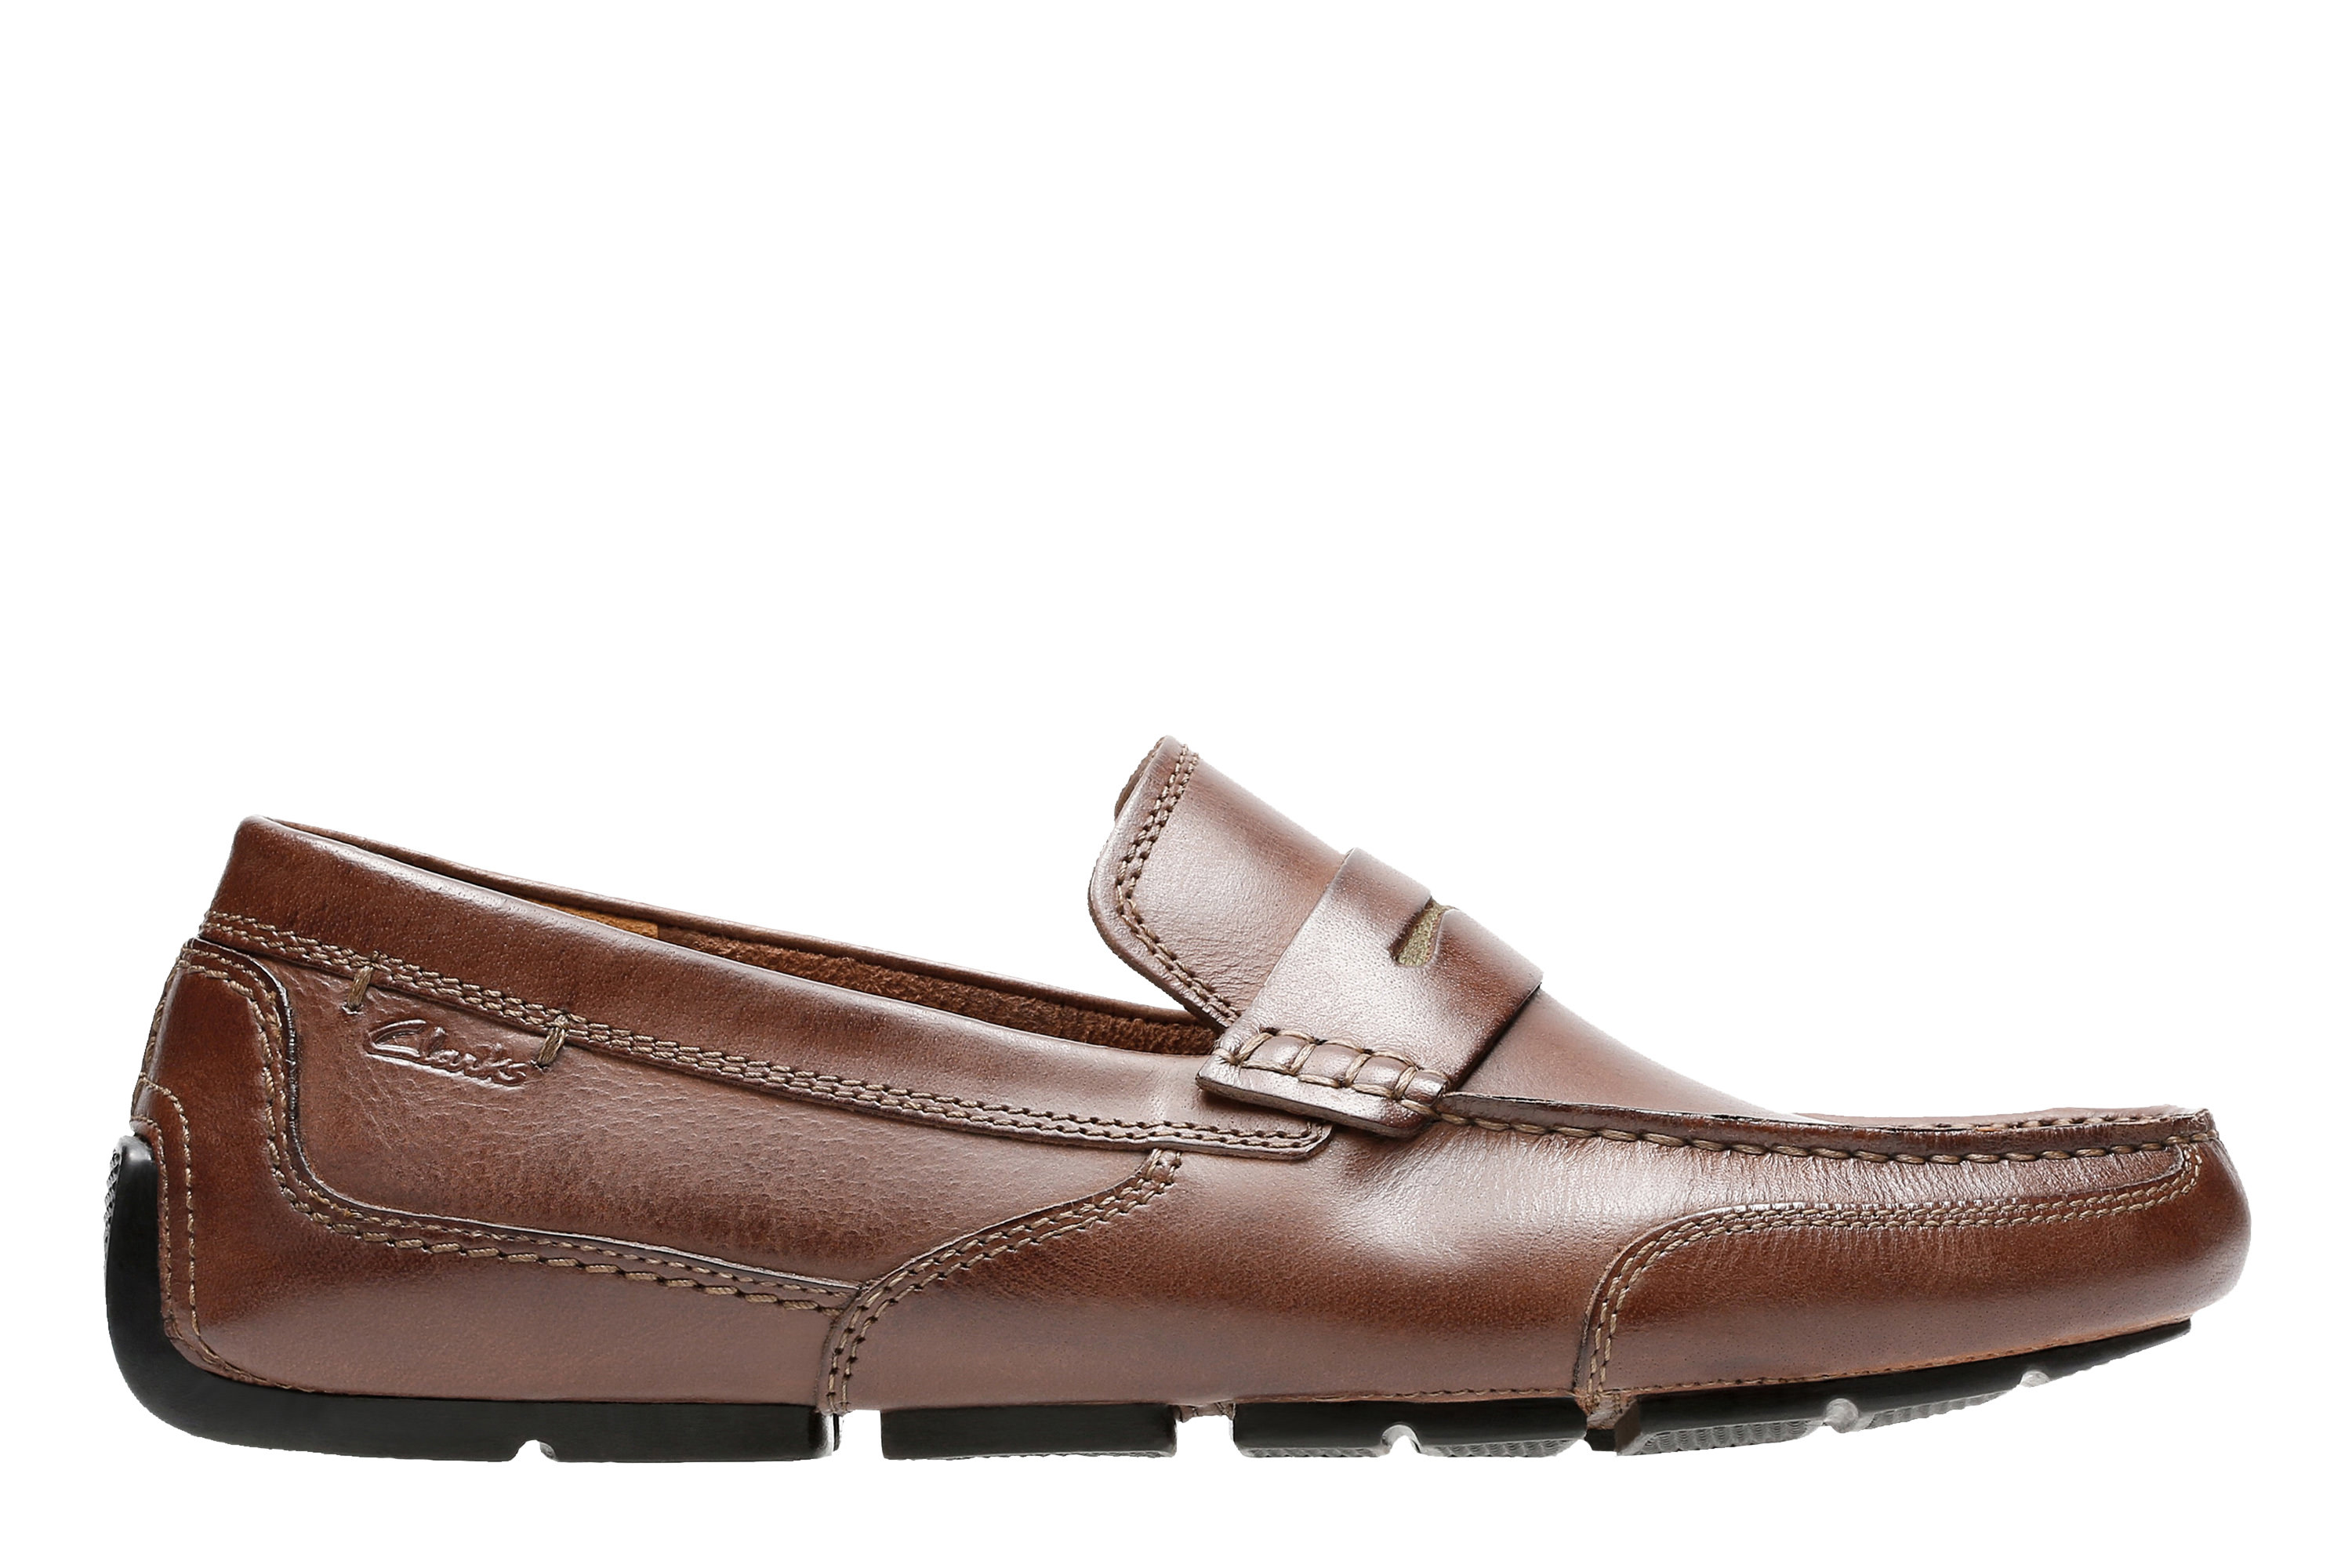 Men's Clarks Ashmont Way Penny Loafers